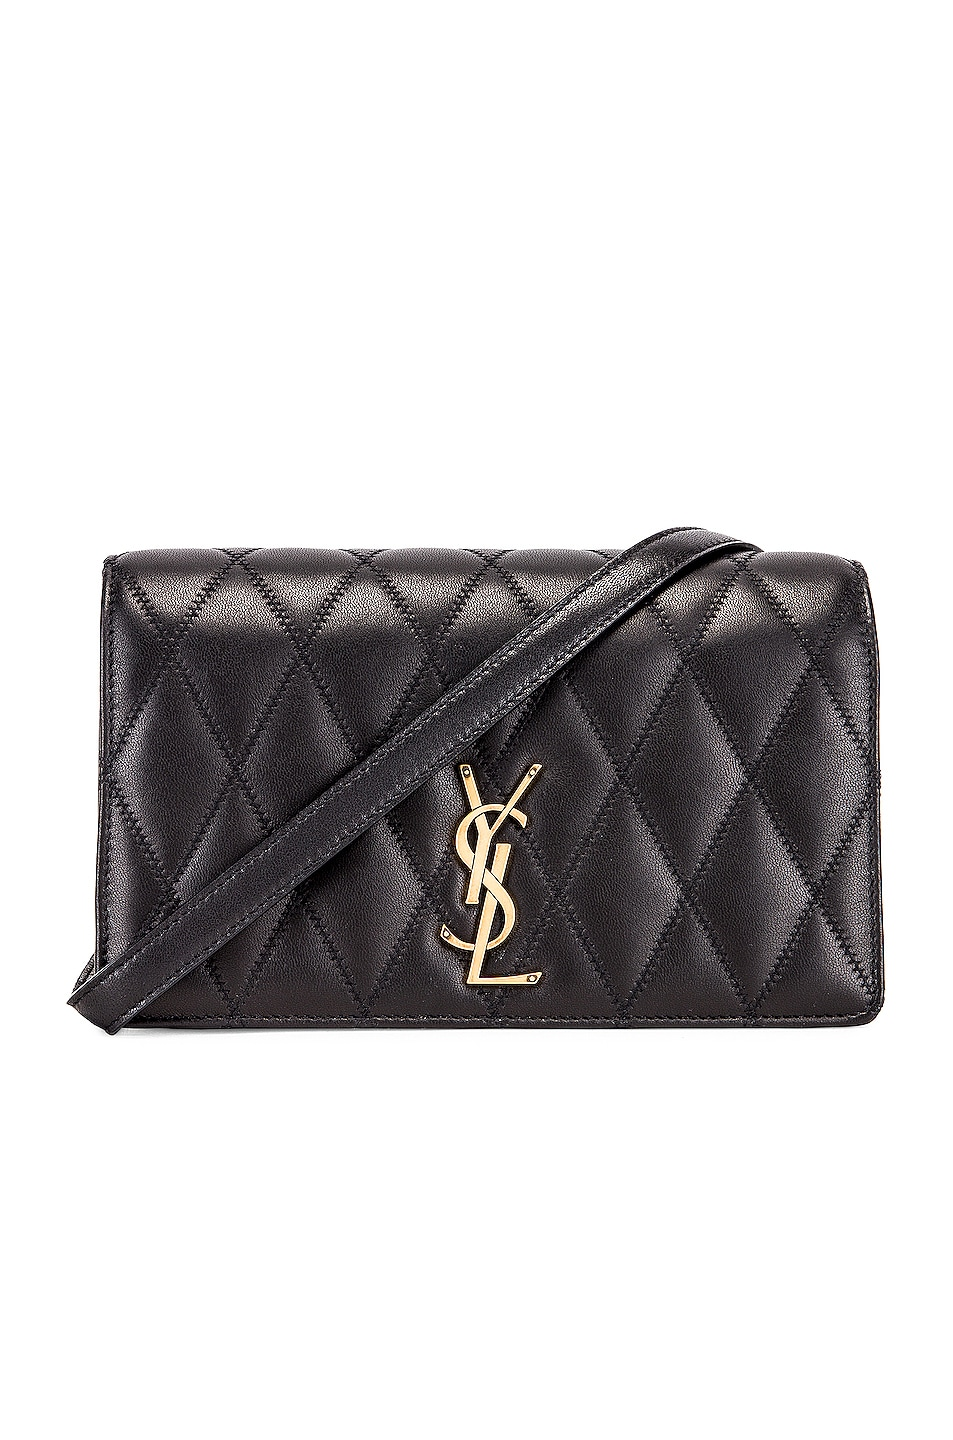 Image 1 of Saint Laurent Angie Chain Bag in Black